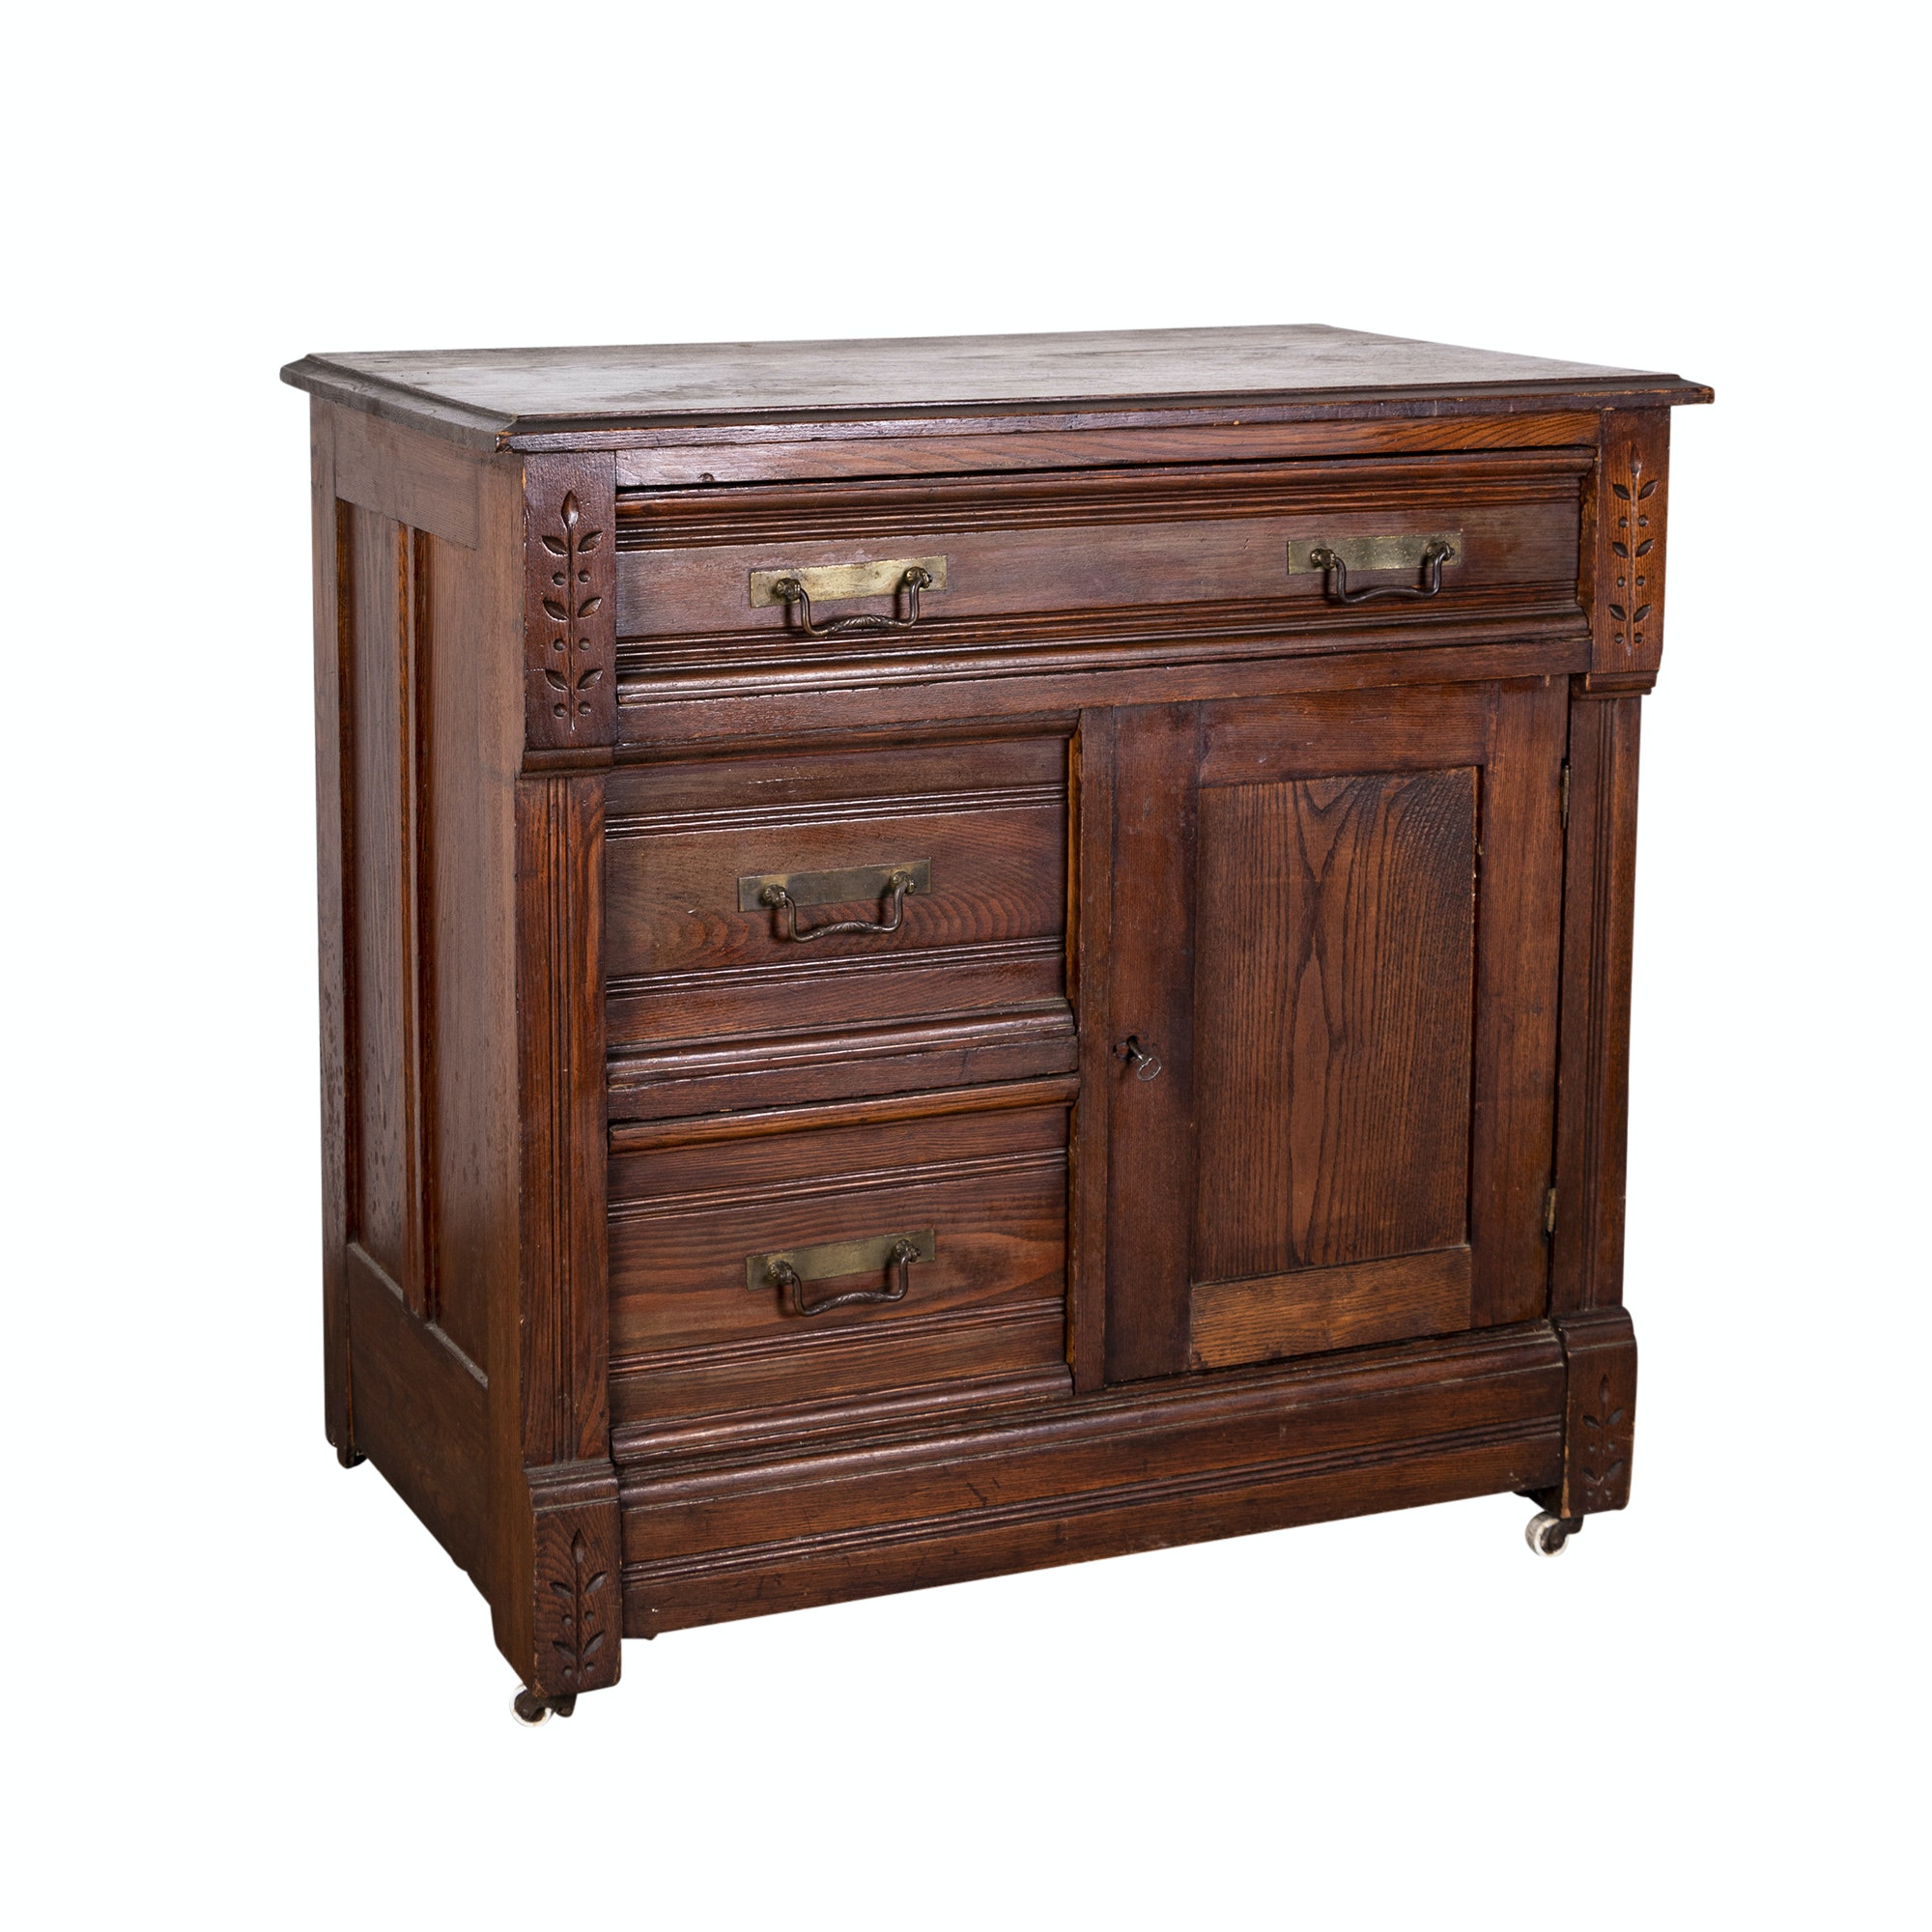 Late Victorian Oak Cabinet with Chip Carving, Circa 1900